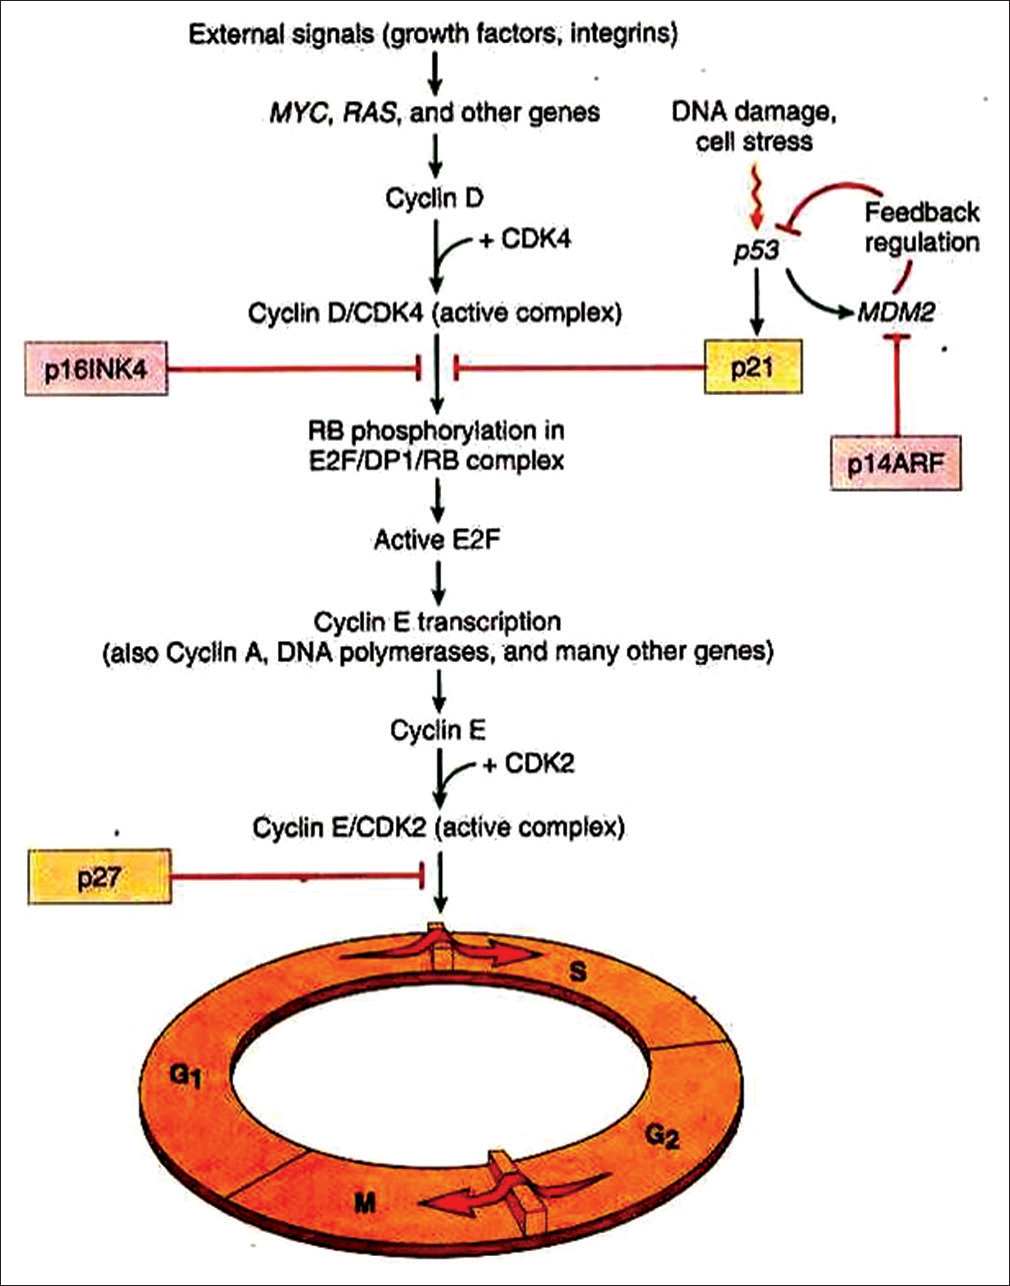 Figure 1: Role of cyclin D1 in the control of cell cycle